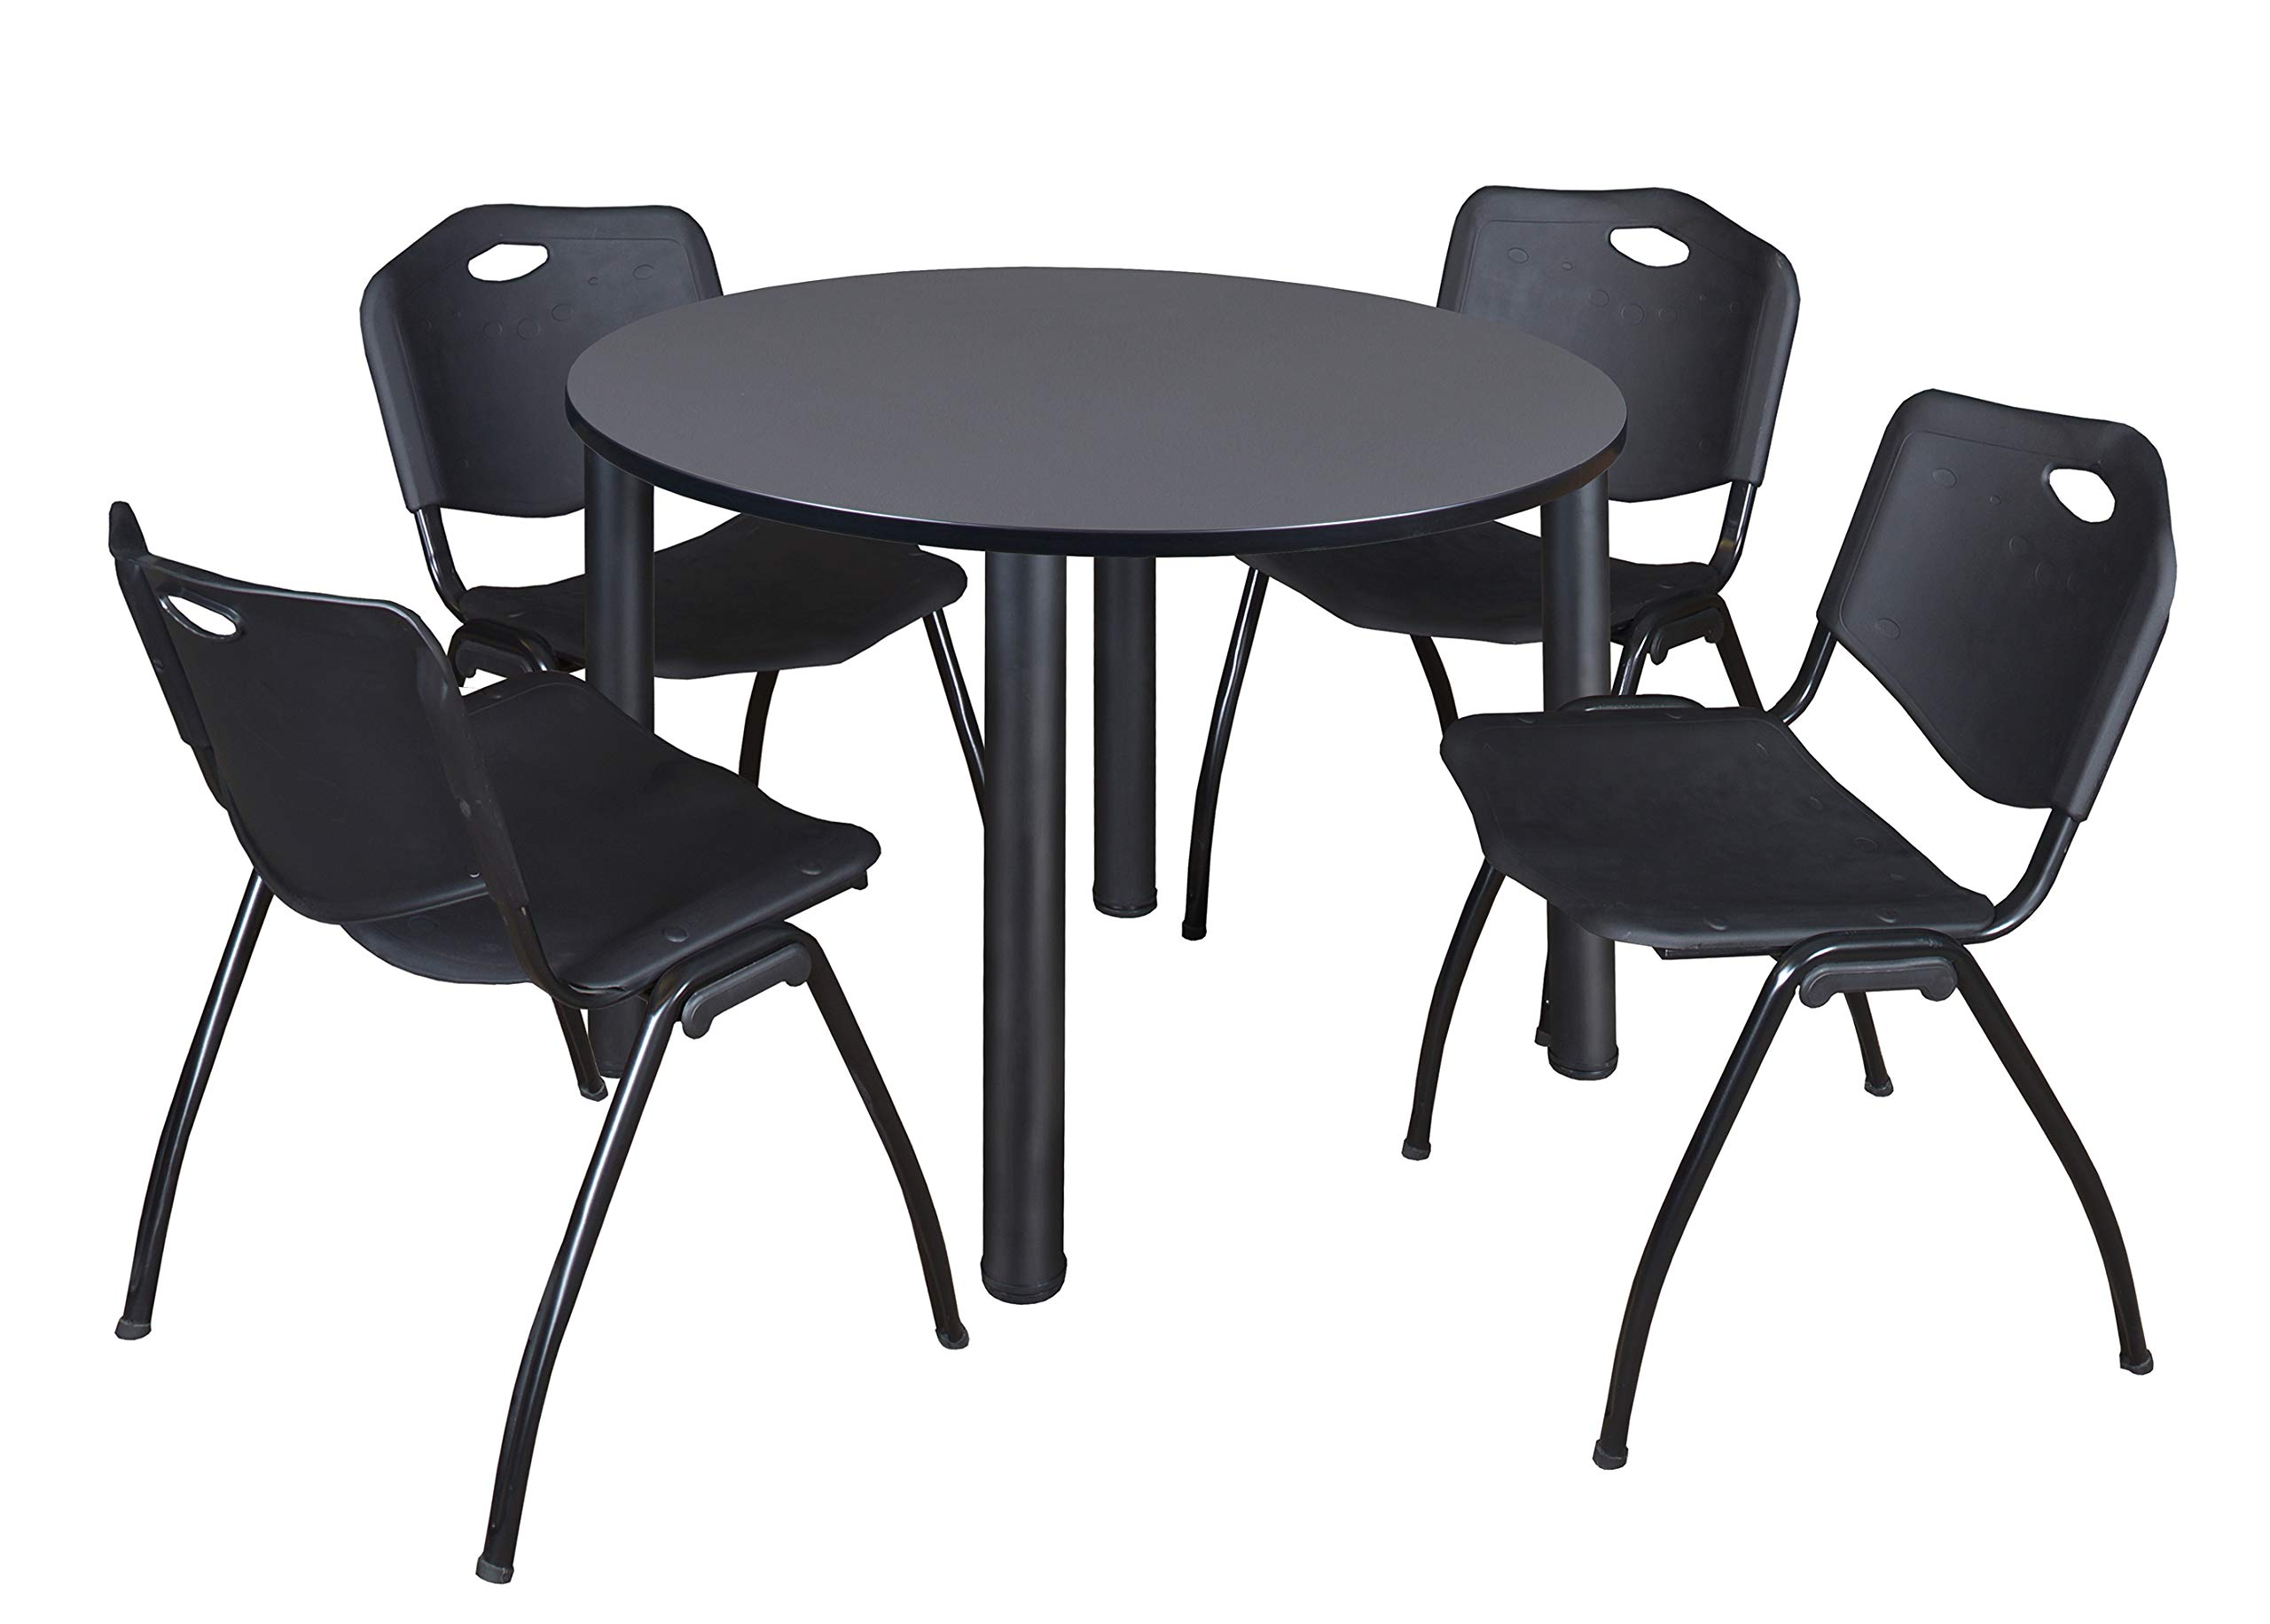 Kee 48'' Round Breakroom Table- Grey/ Black & 4 'M' Stack Chairs- Black by Regency